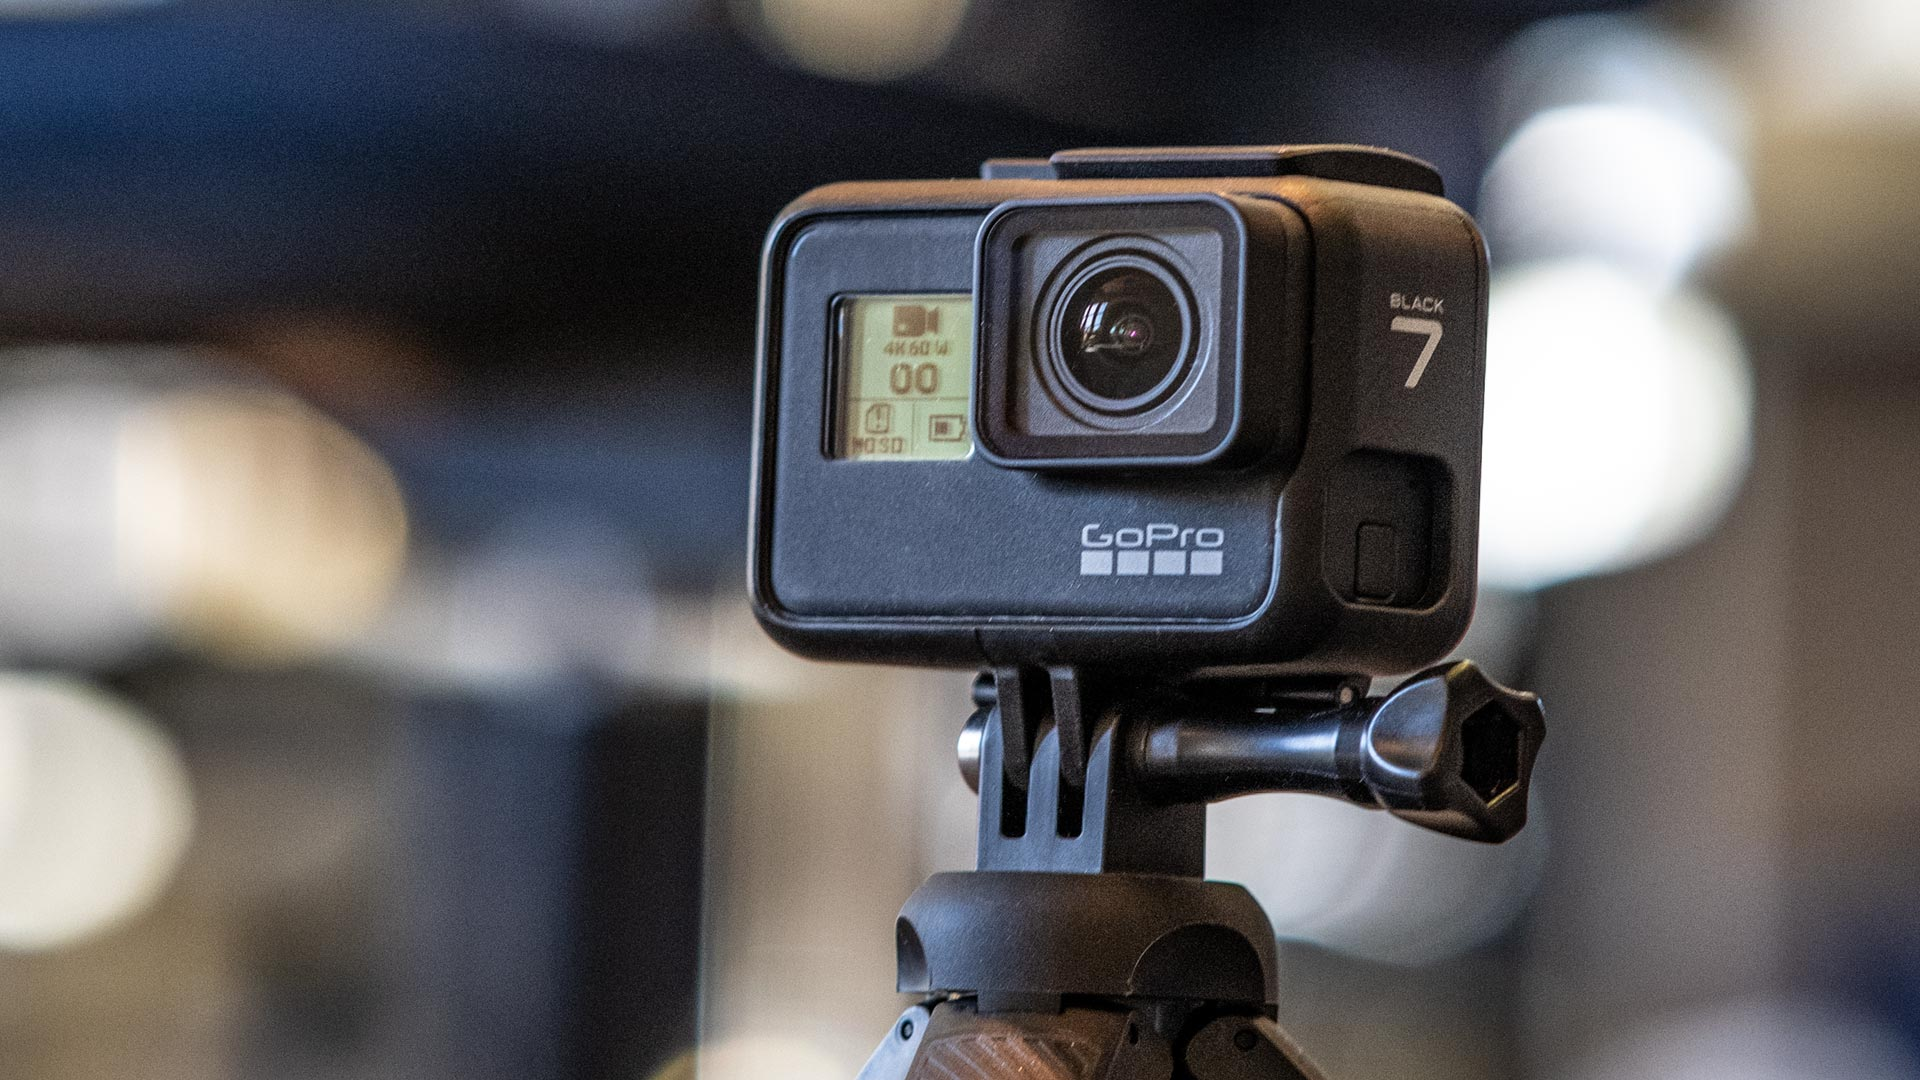 GoPro HERO7 Black review: The stable action camera - Videomaker